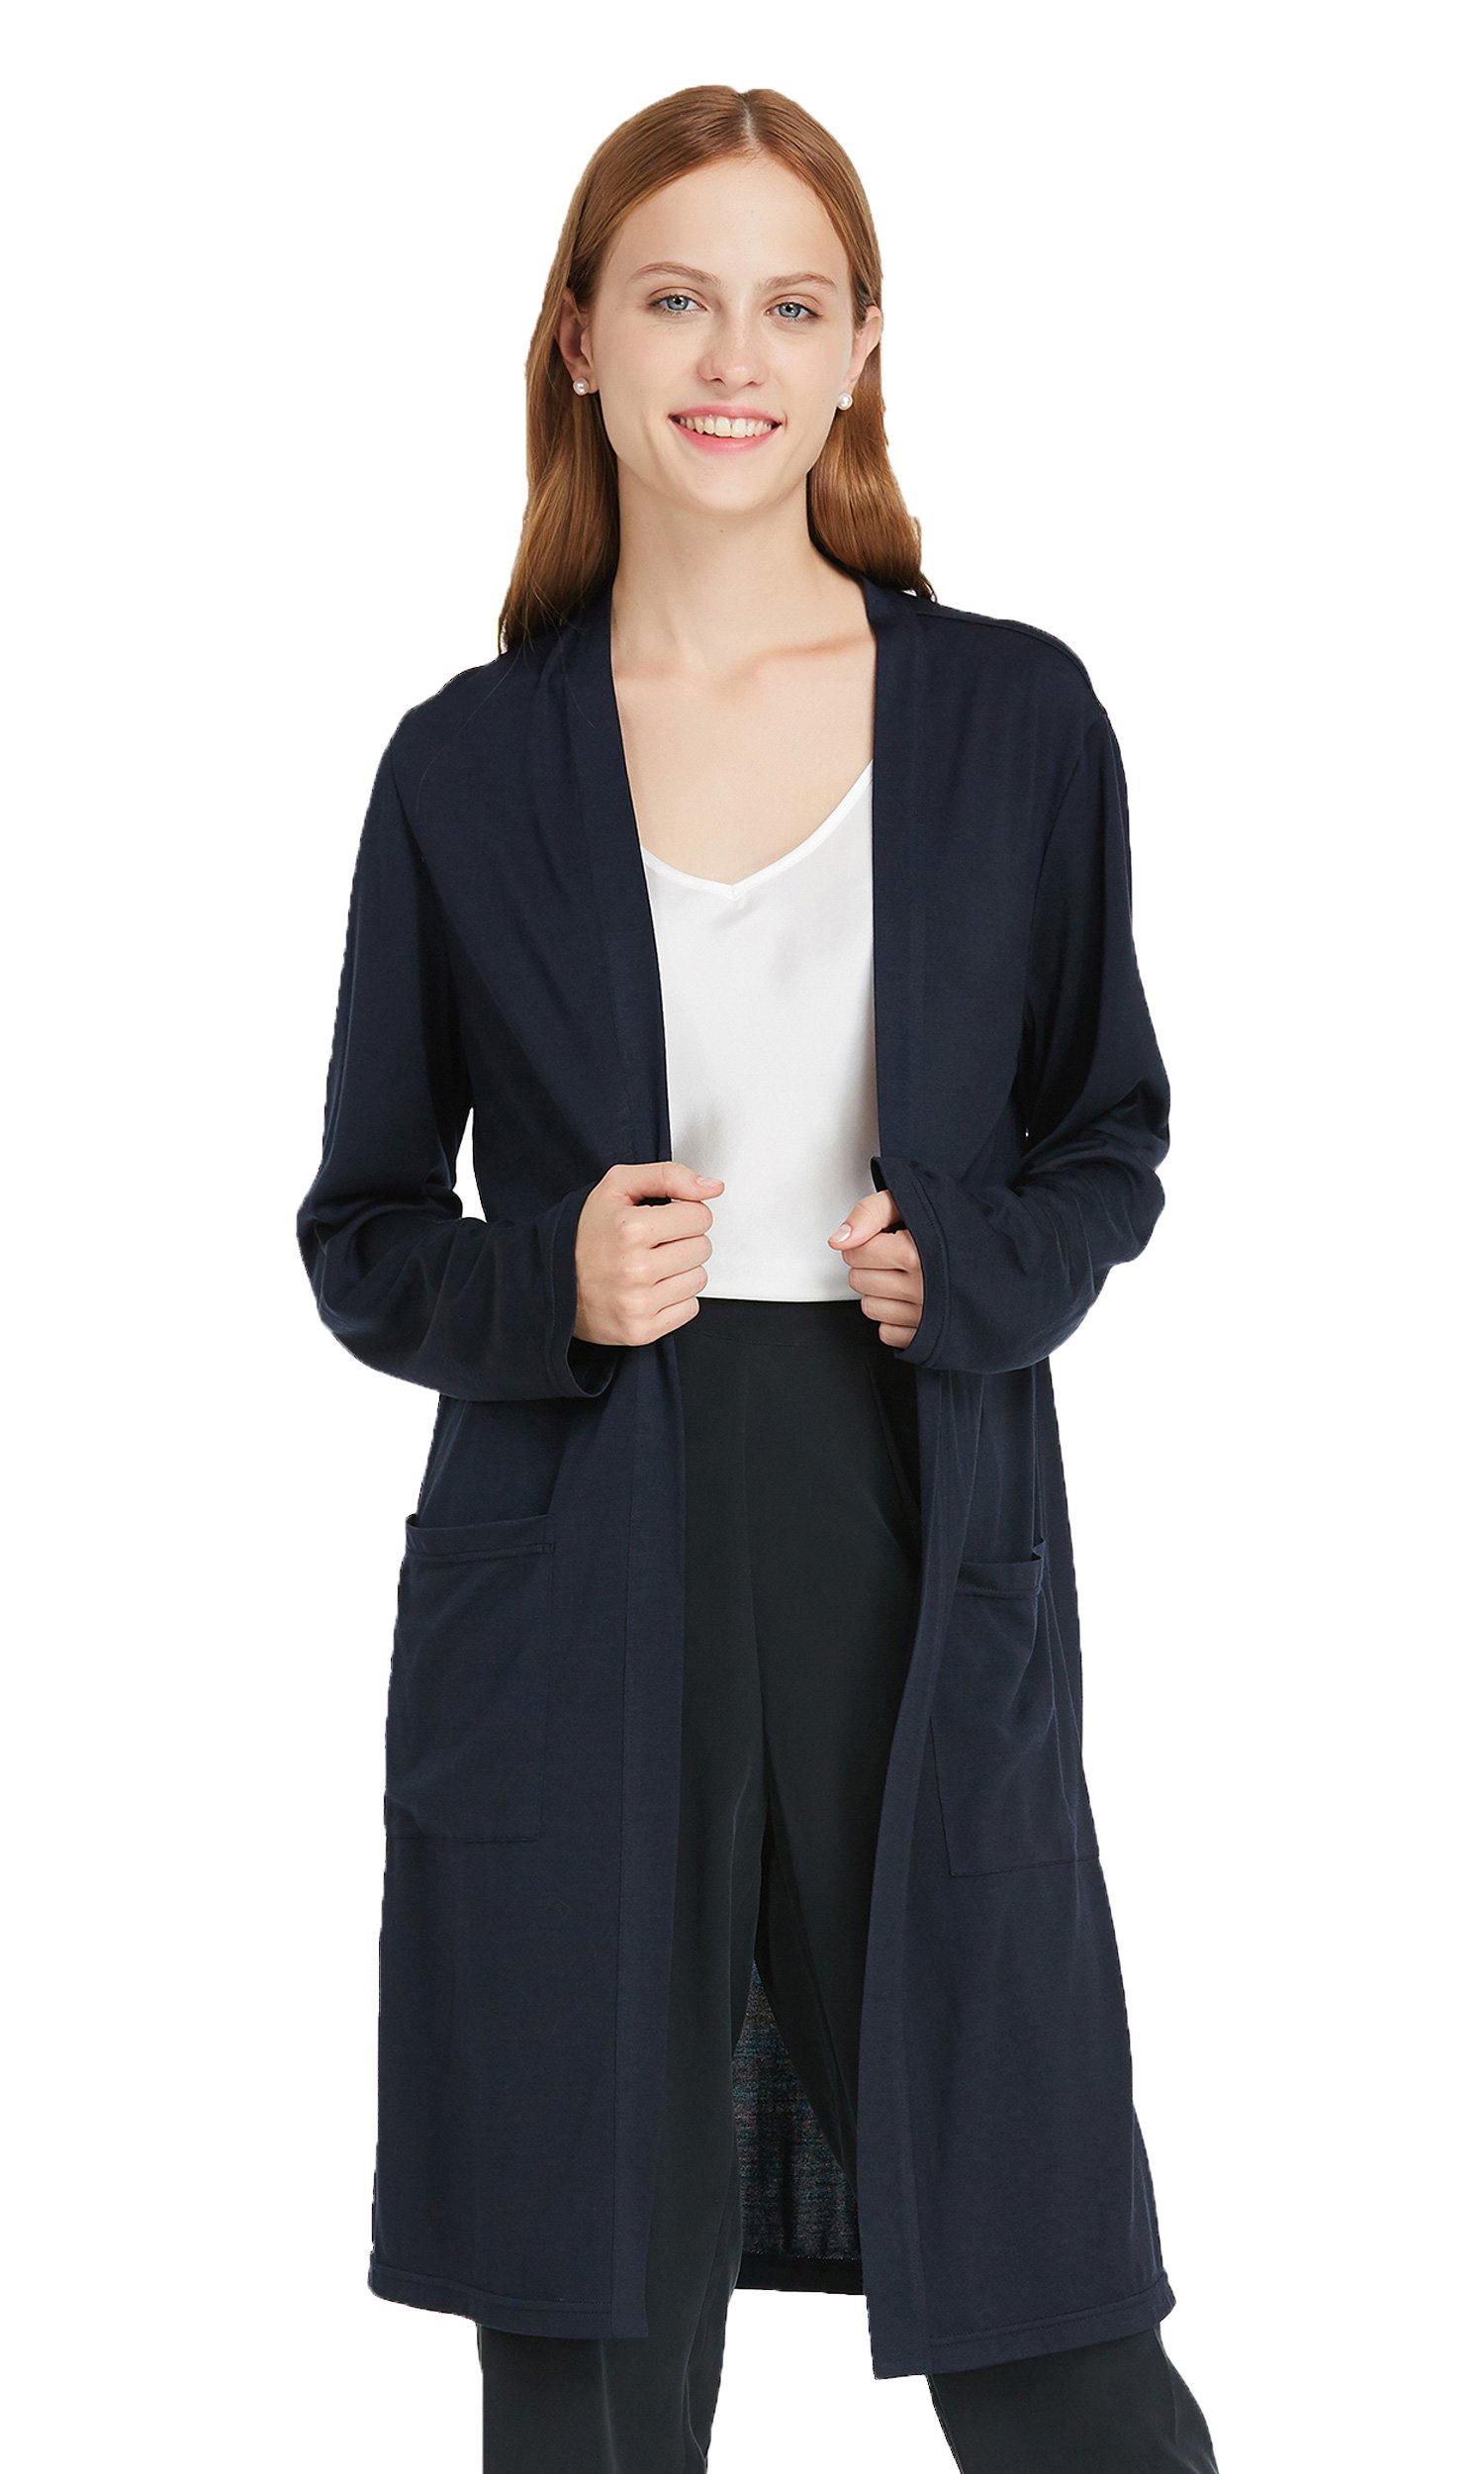 LILYSILK Womens Cardigan Real Silk and Wool Blend Coat All Match Long Knitted Outerwear Ladies Winter Navy Blue S/4-6 by LilySilk